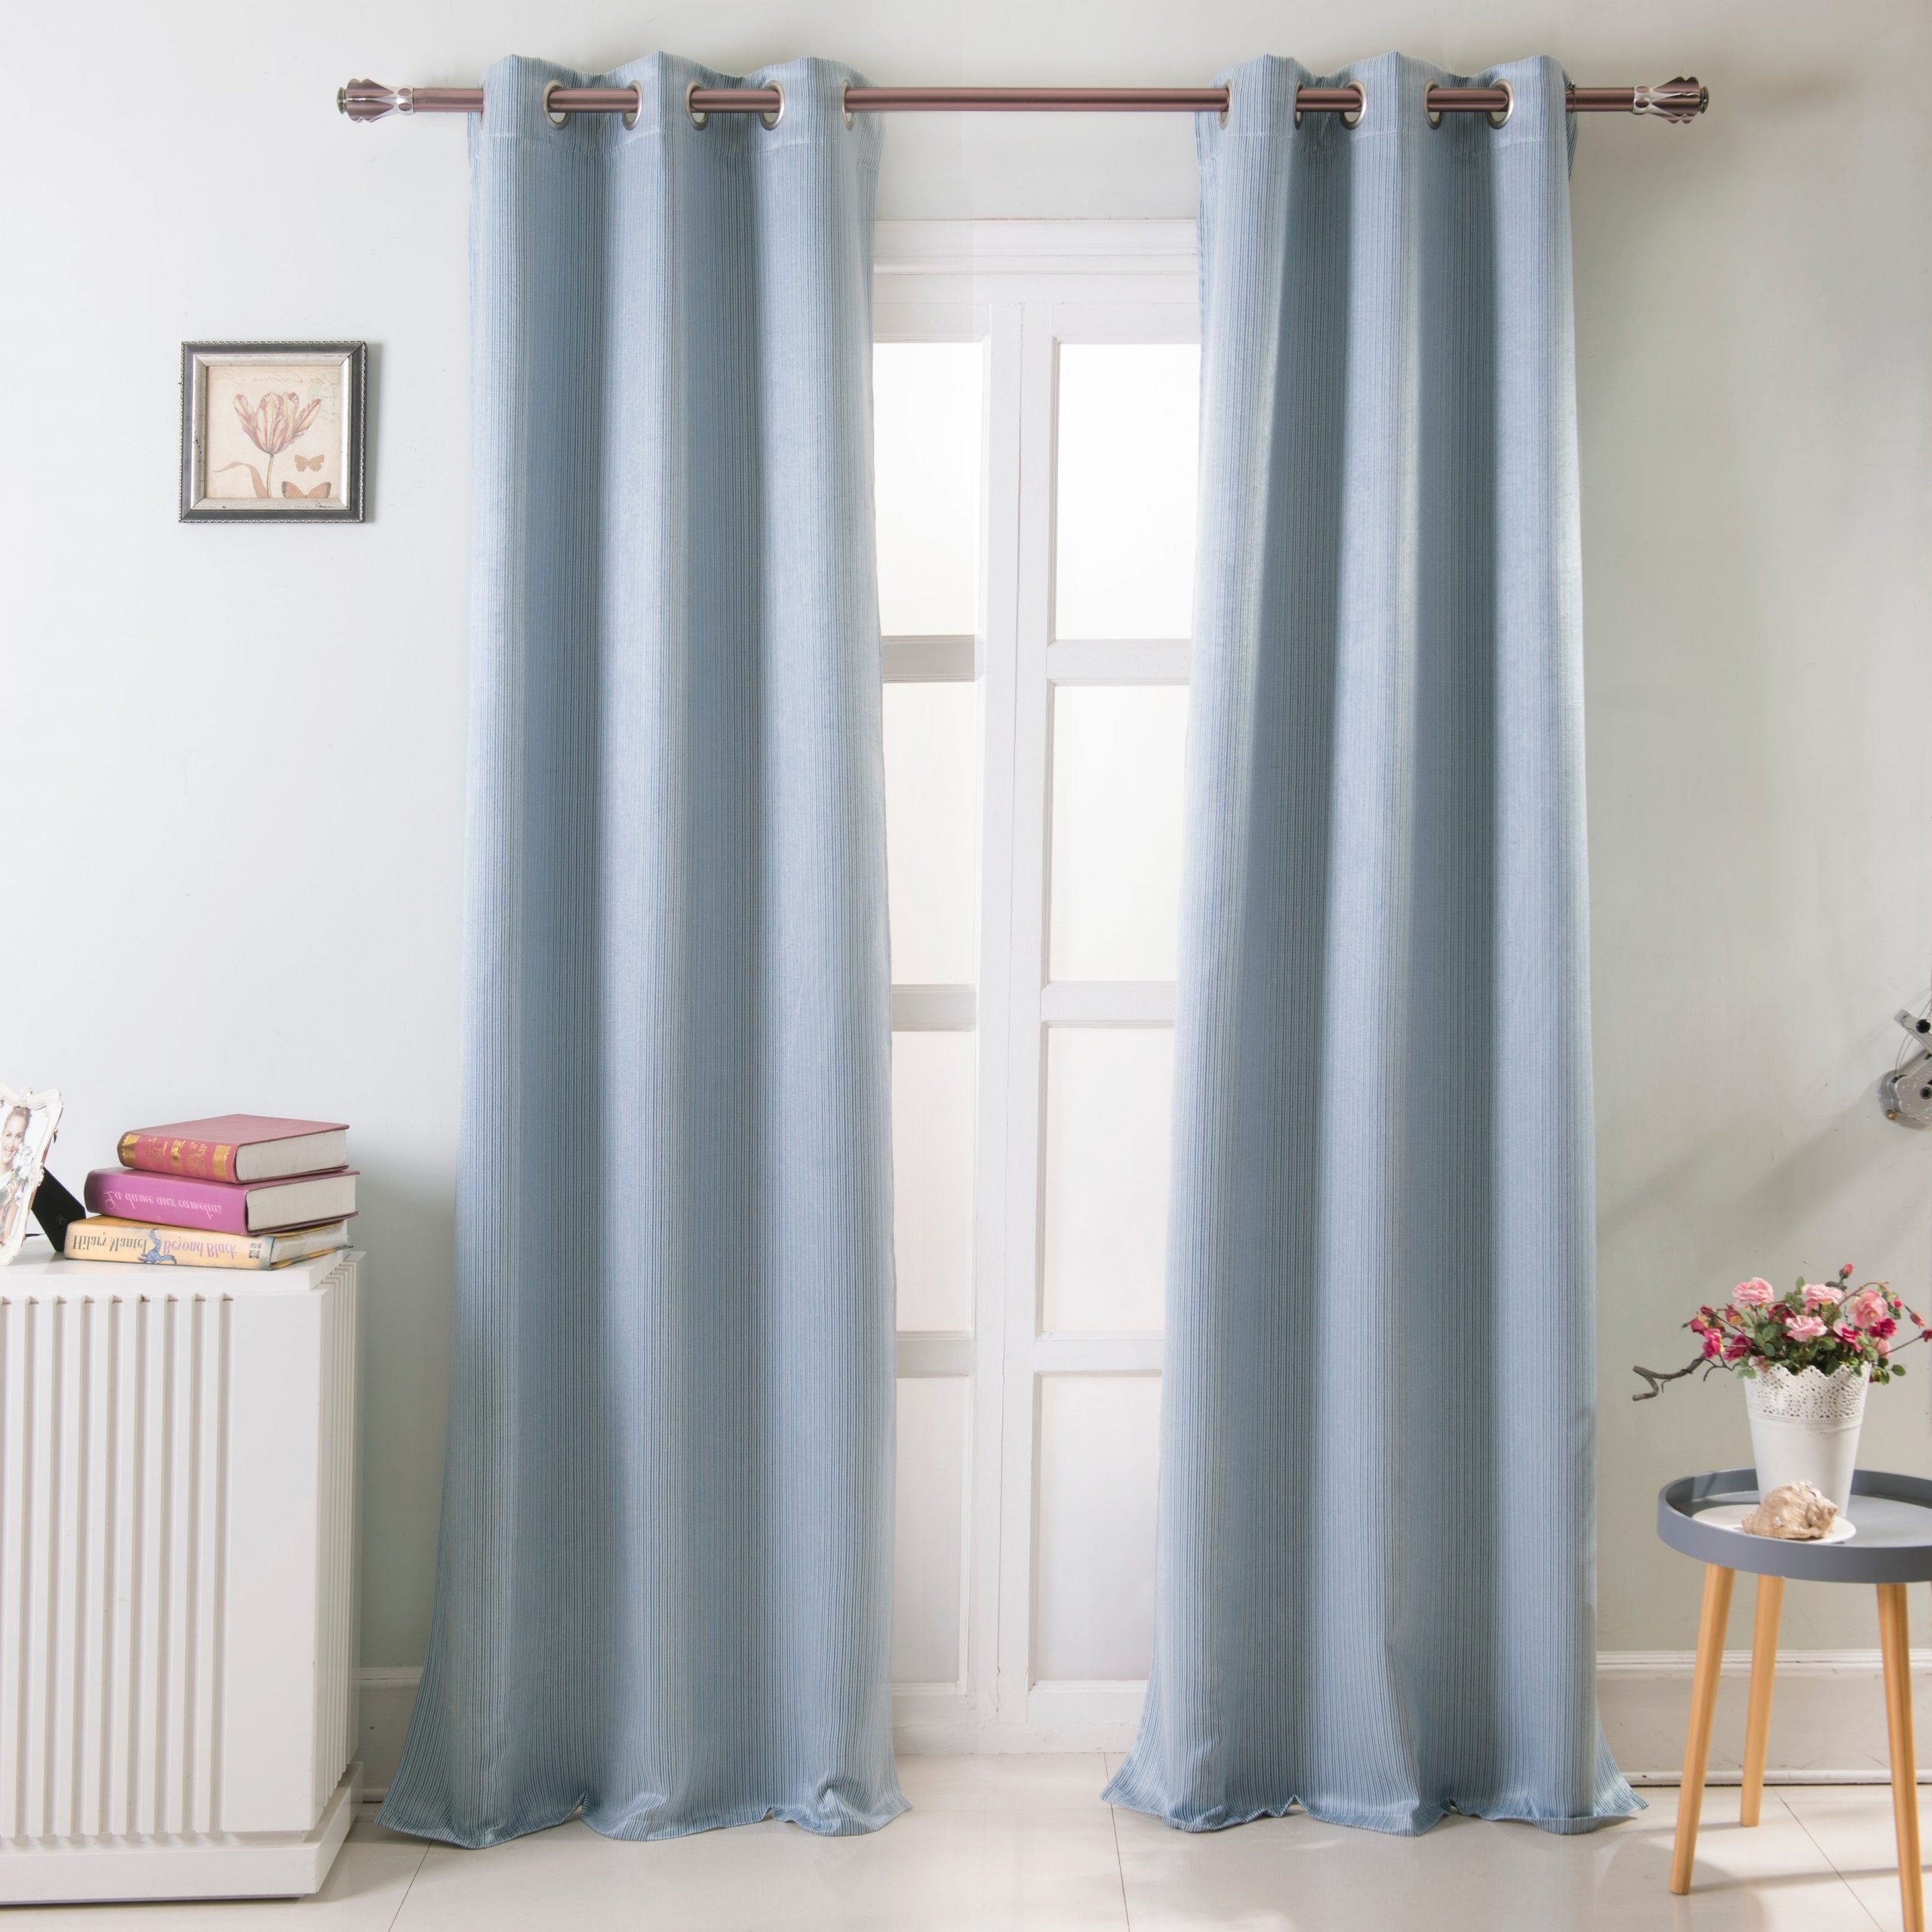 Grommet Curtain Panels With Regard To Well Liked Kane Blackout 72 X 84 In. Grommet Curtain Panel Pair (set Of 2) – 36 In. W X 84 In (View 8 of 20)